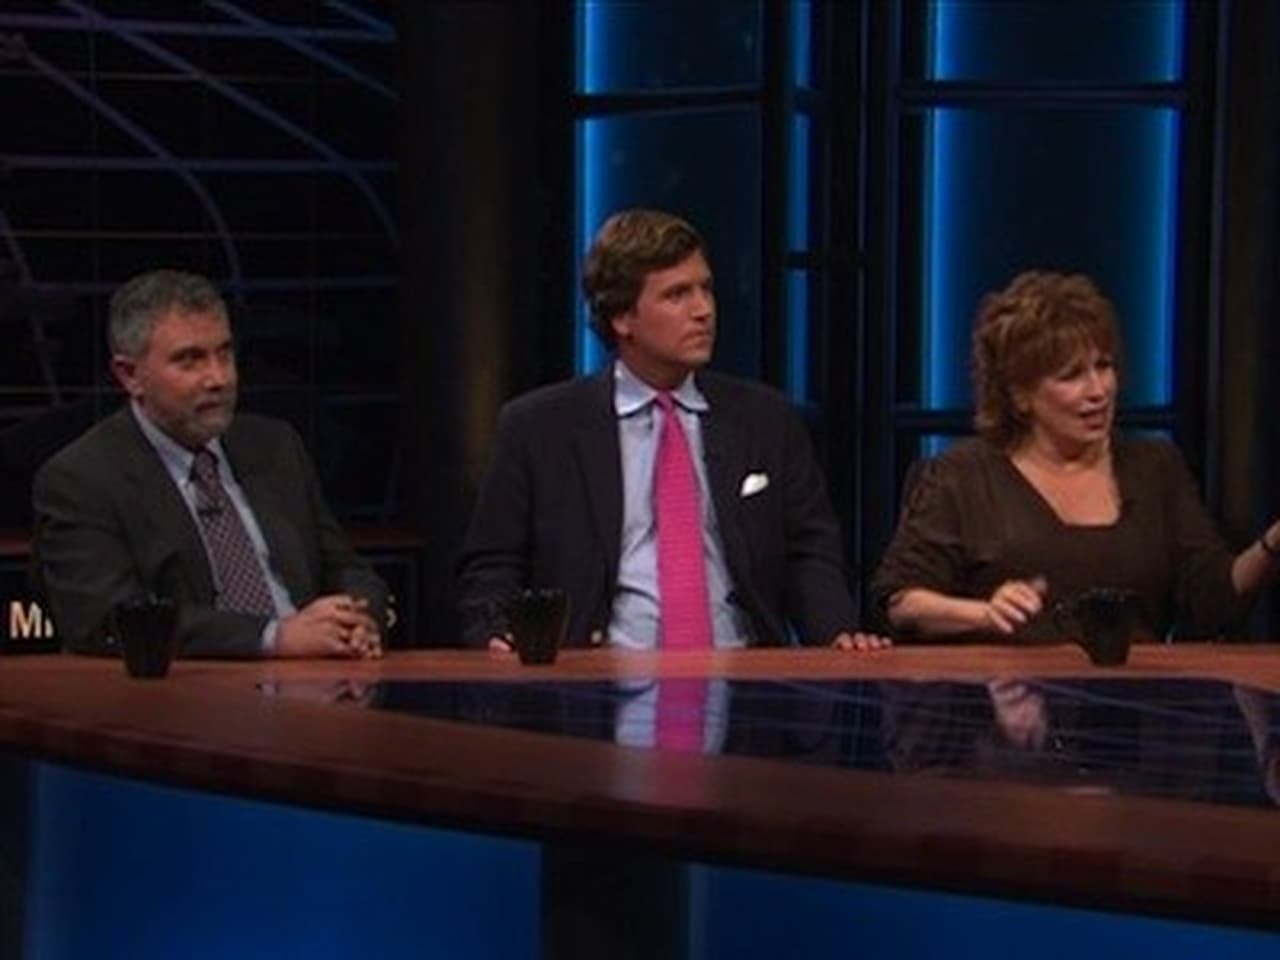 Real Time with Bill Maher - Season 5 Episode 21 : October 12, 2007